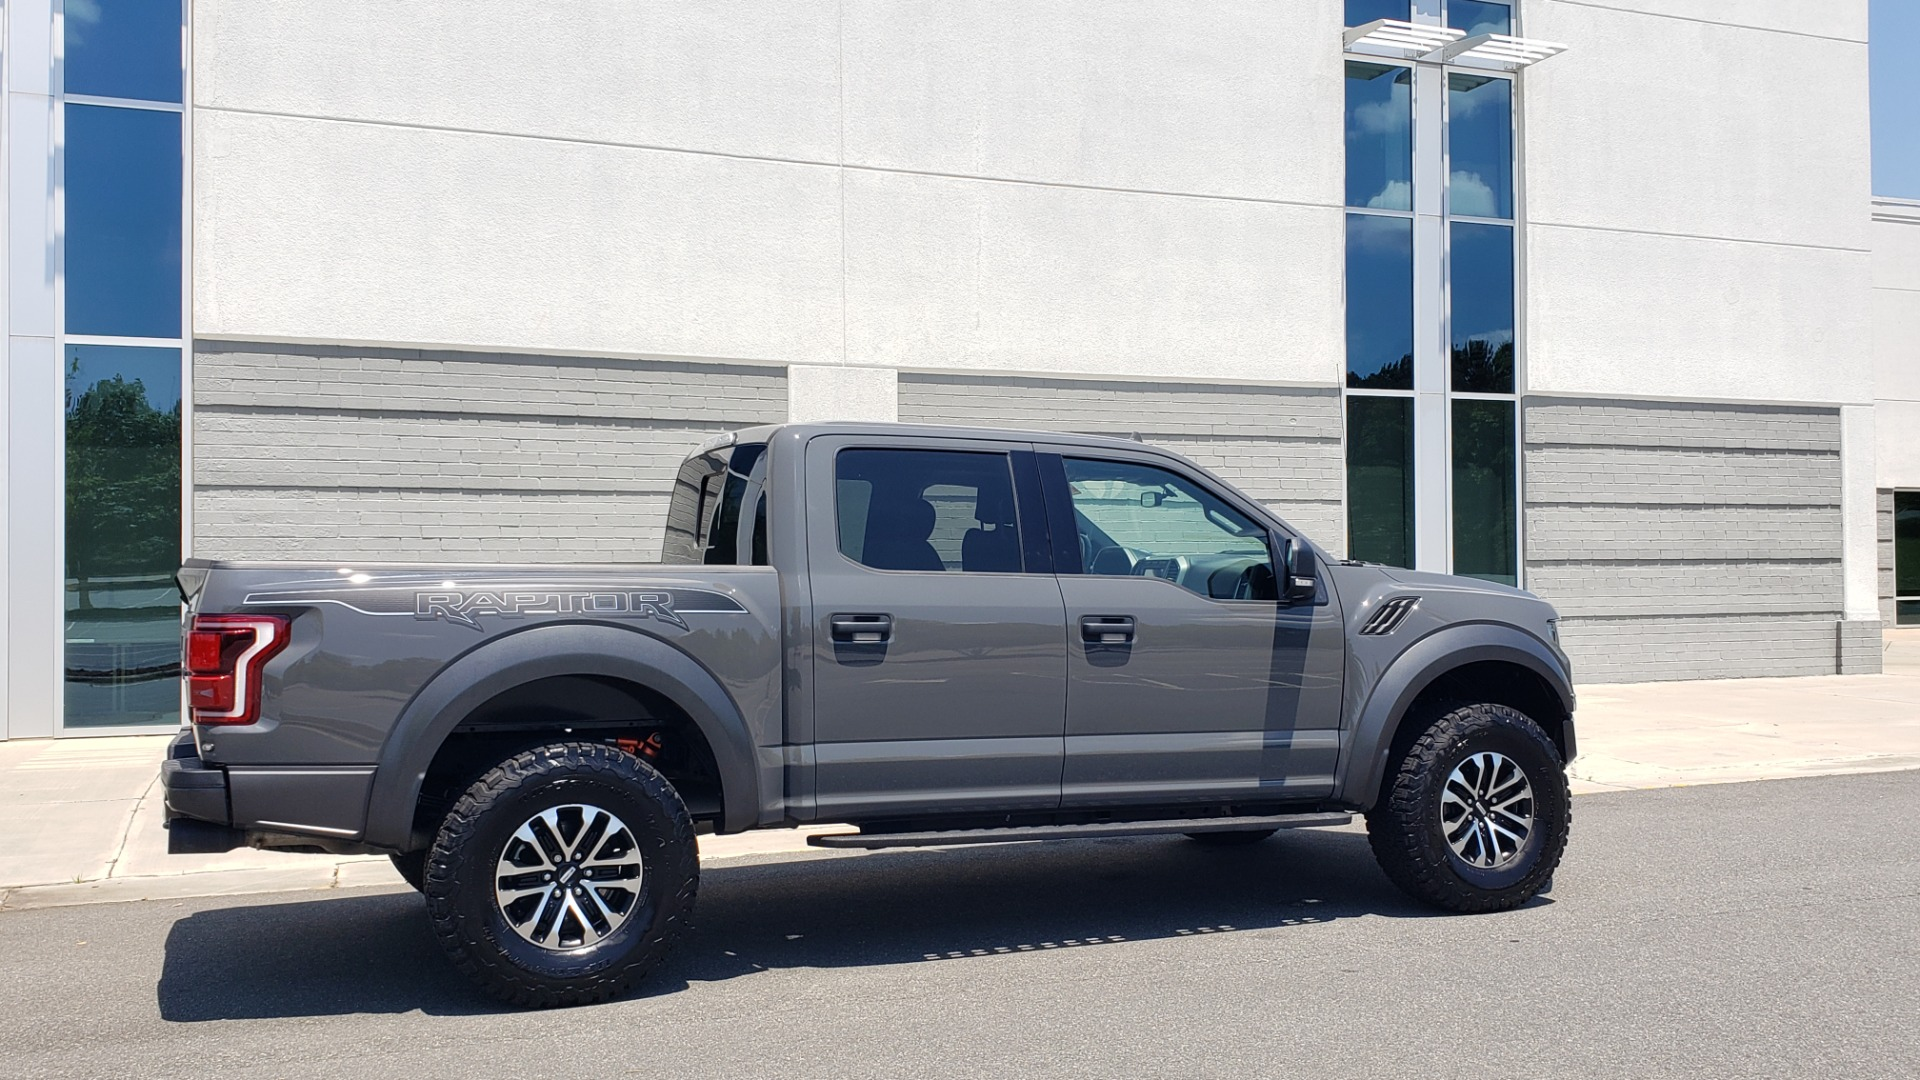 Used 2020 Ford F-150 RAPTOR 4X4 SUPERCREW / 3.5L ECOBOOST / 10-SPD AUTO / SUNROOF / REARVIEW for sale $82,500 at Formula Imports in Charlotte NC 28227 8